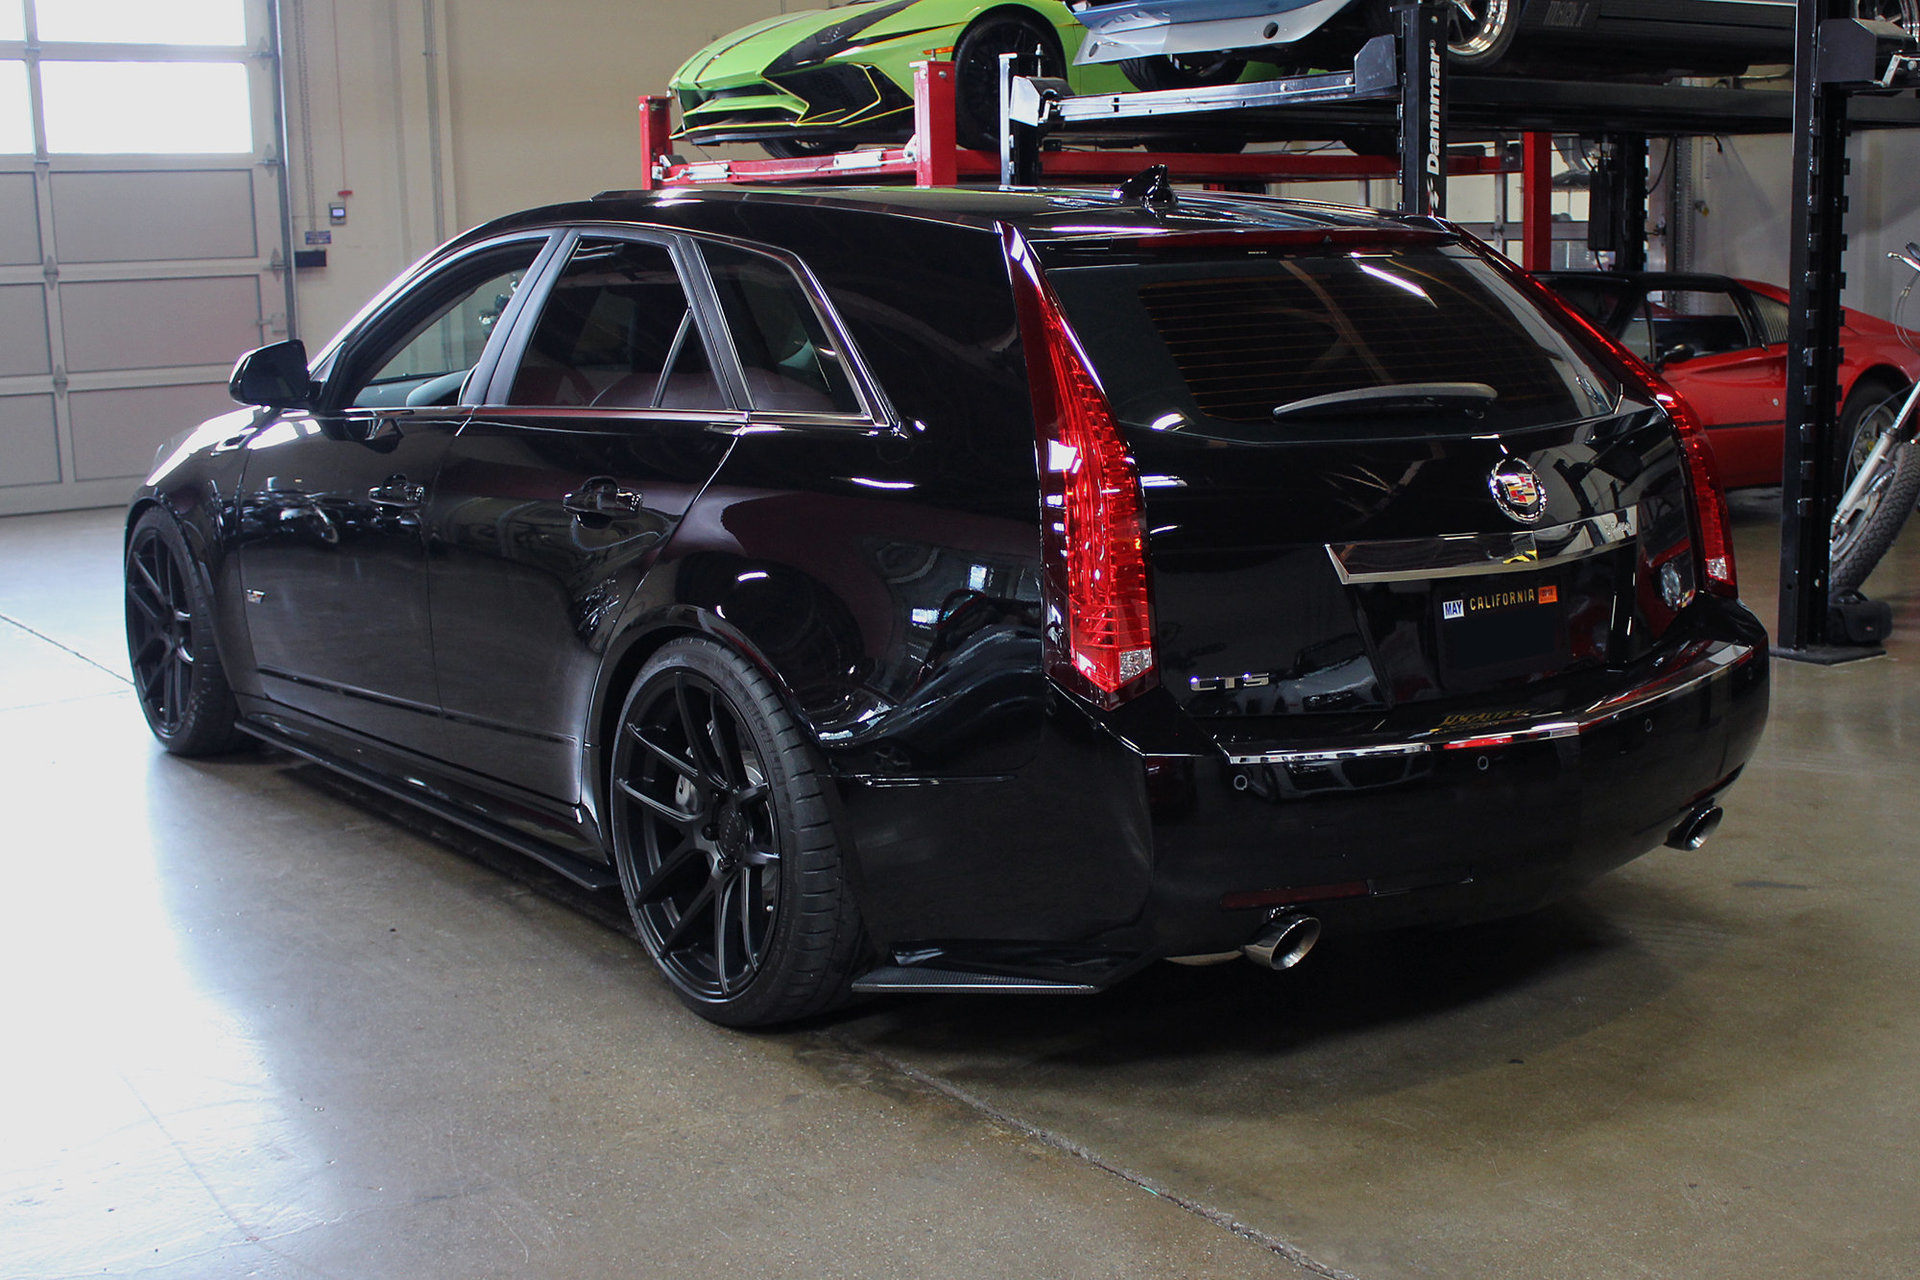 Cadillac Cts Coupe For Sale >> 2012 Cadillac CTS-V for sale #78270 | MCG